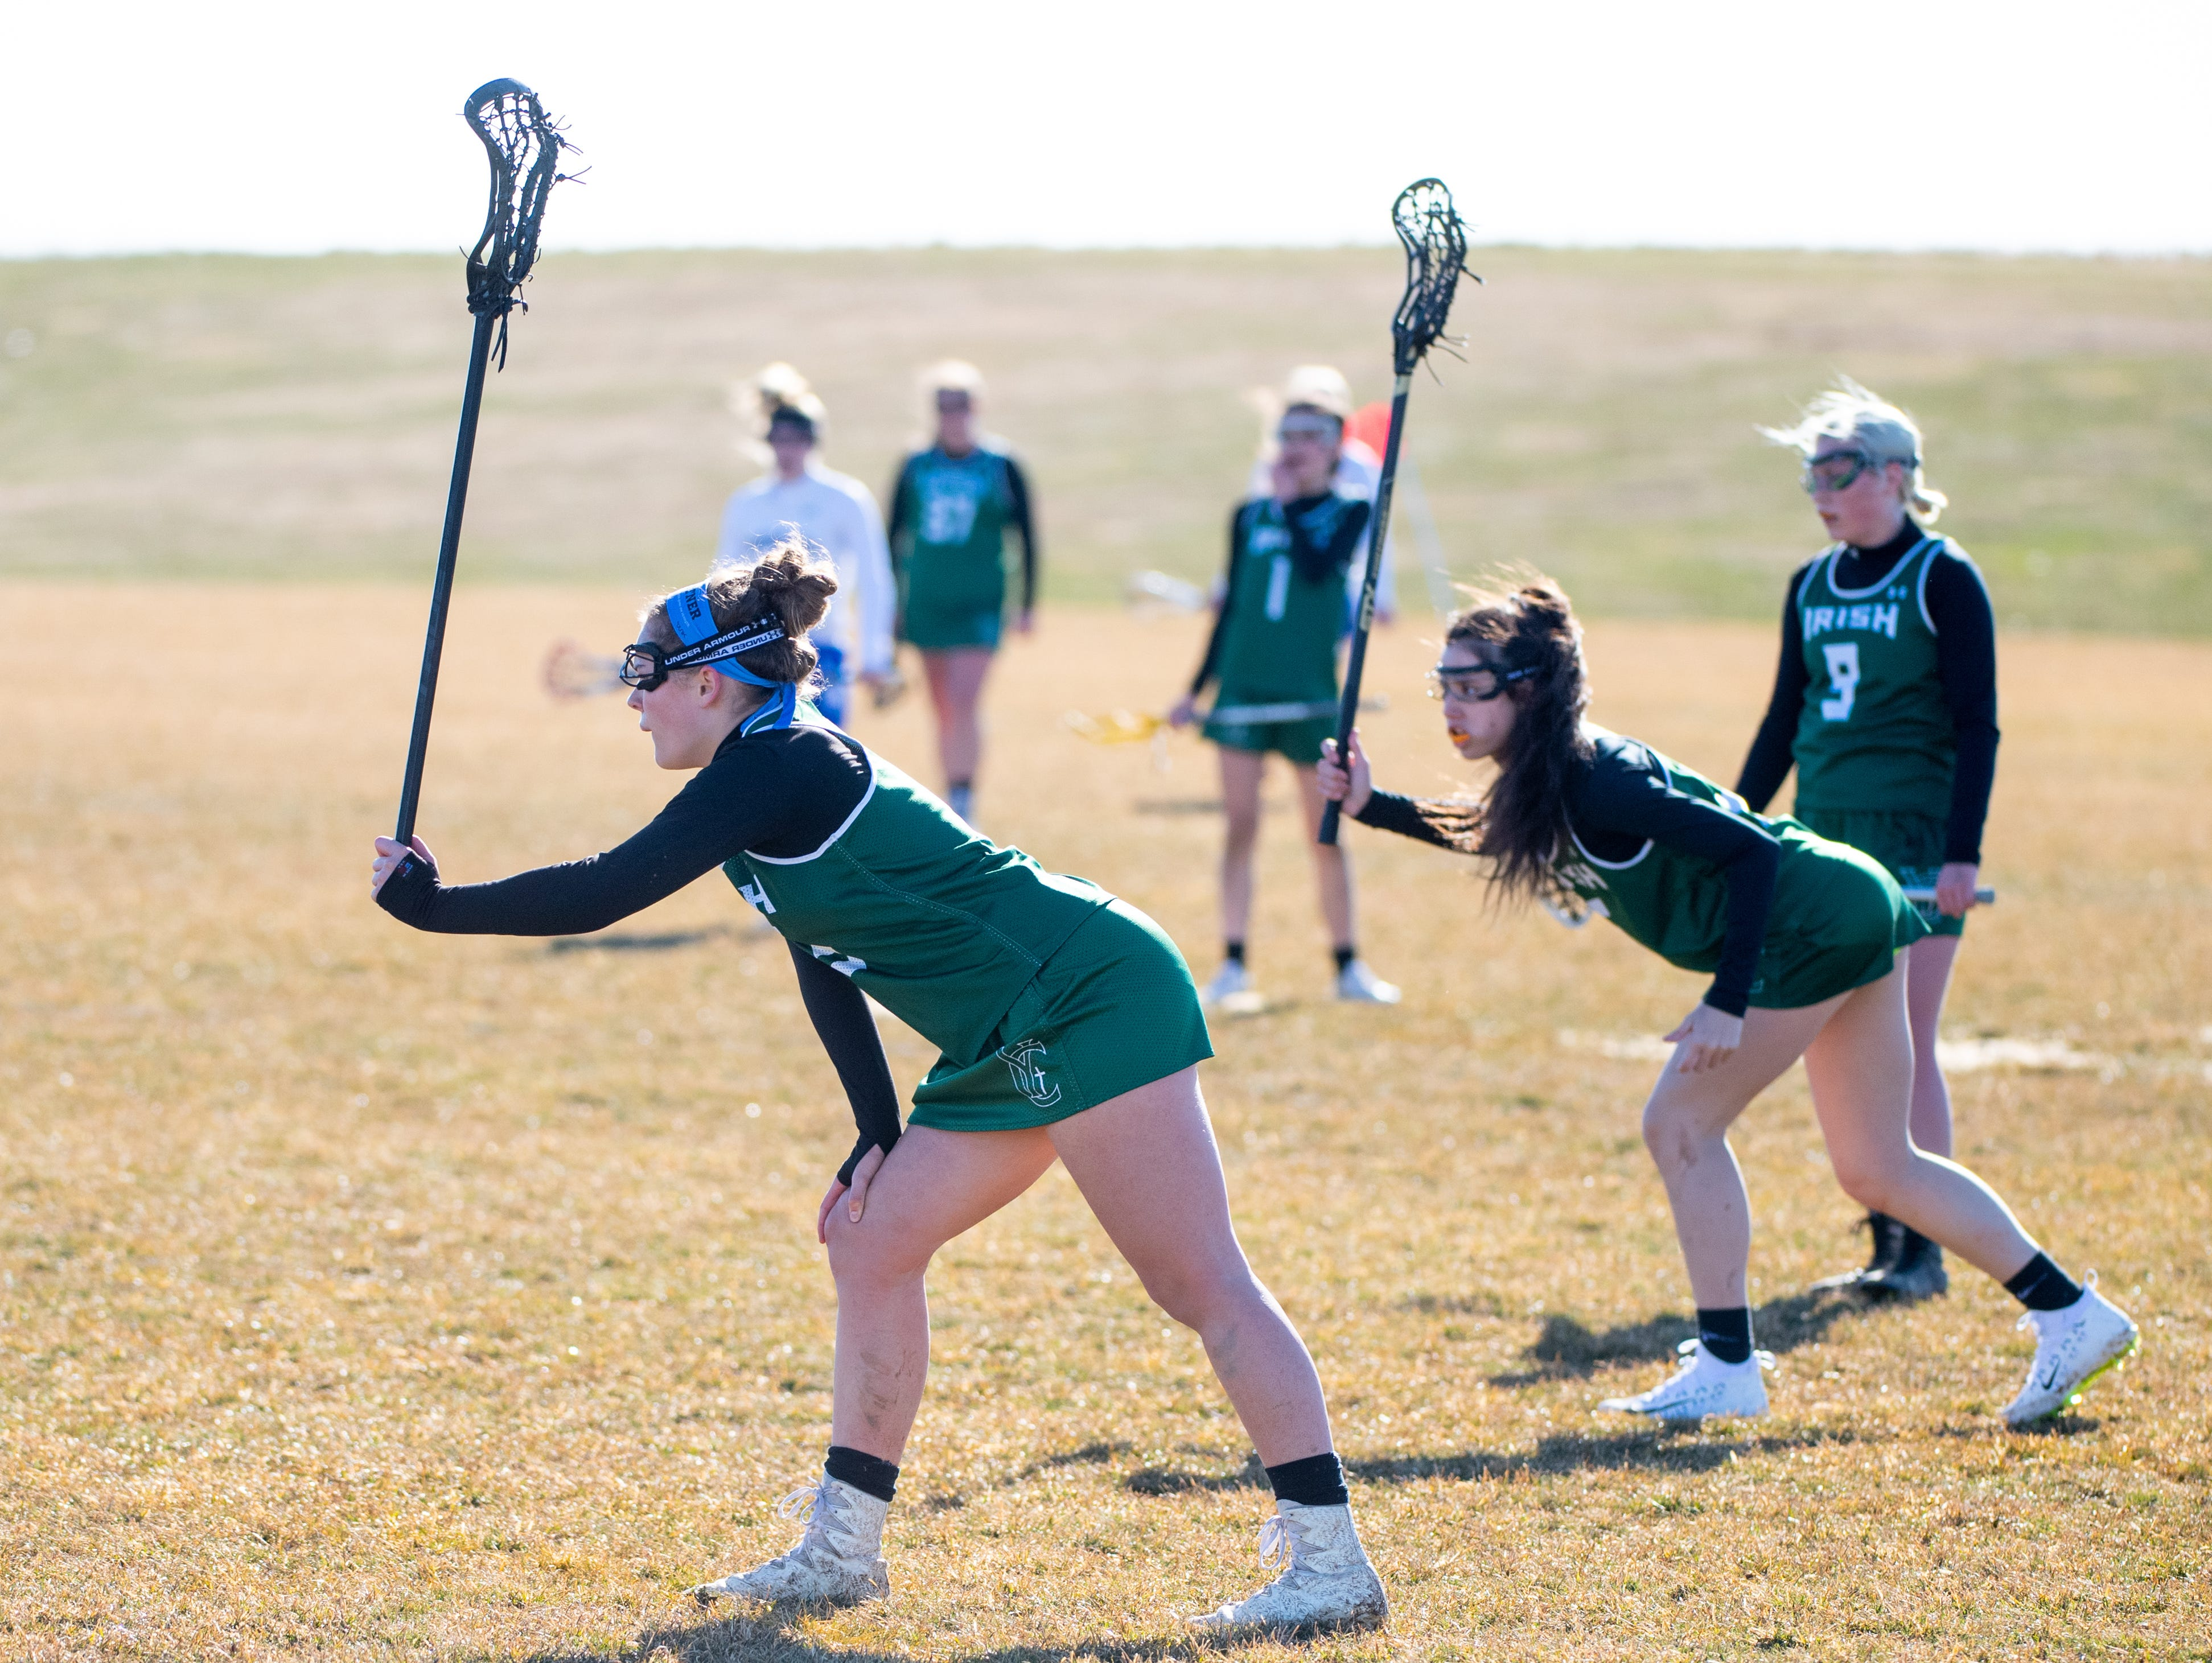 York Catholic takes up defensive positions during the girls' lacrosse game between Kennard-Dale and York Catholic, March 26, 2019 at Kennard-Dale High School. The Fighting Irish defeated the Rams 10 to 9.